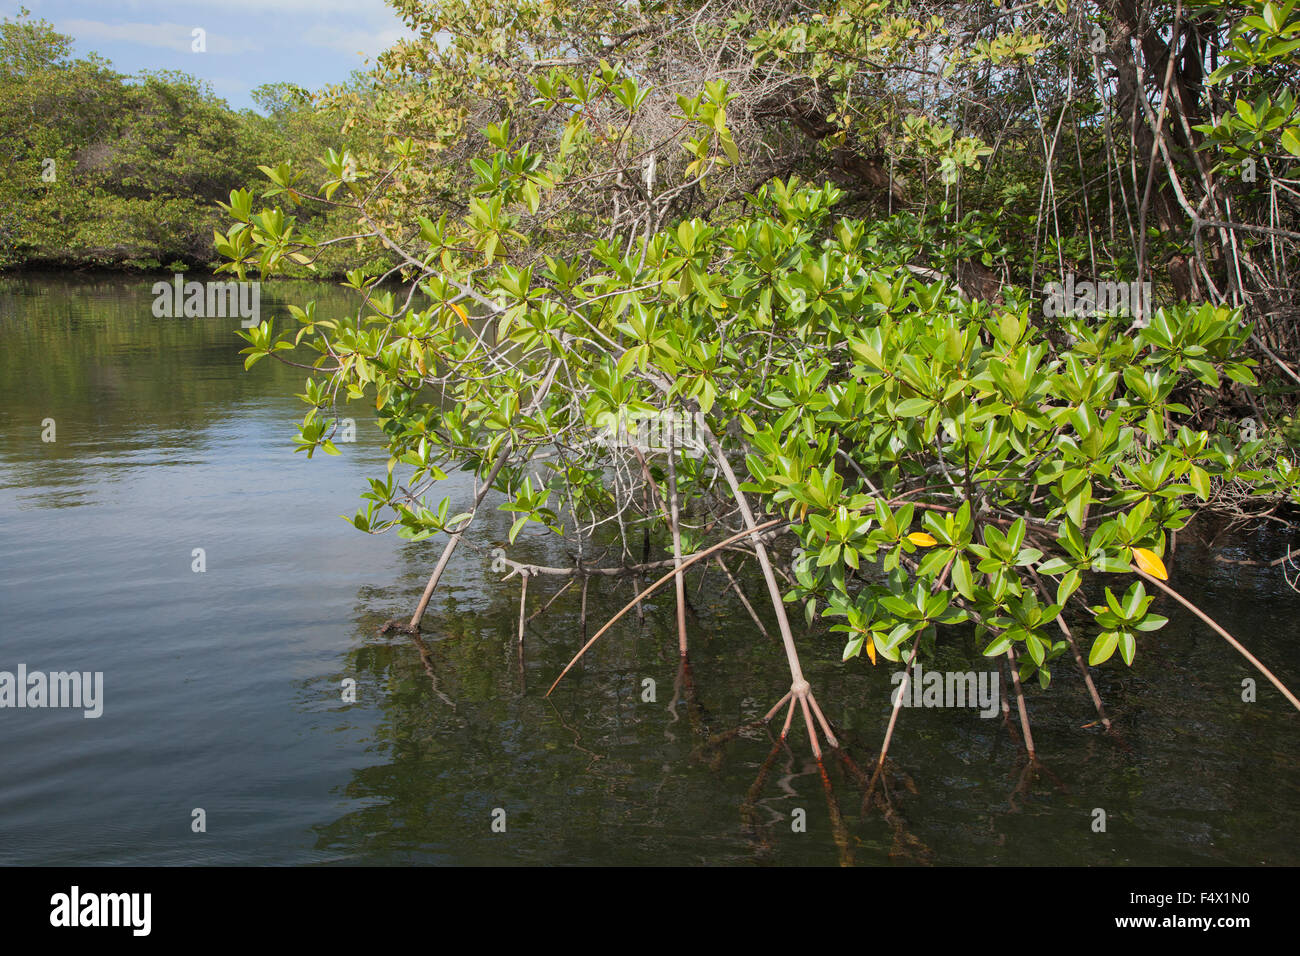 Red Mangrove (Rhizophora mangle) with aerial prop roots in intertidal zone of Black Turtle Cove, an estuary on Santa - Stock Image